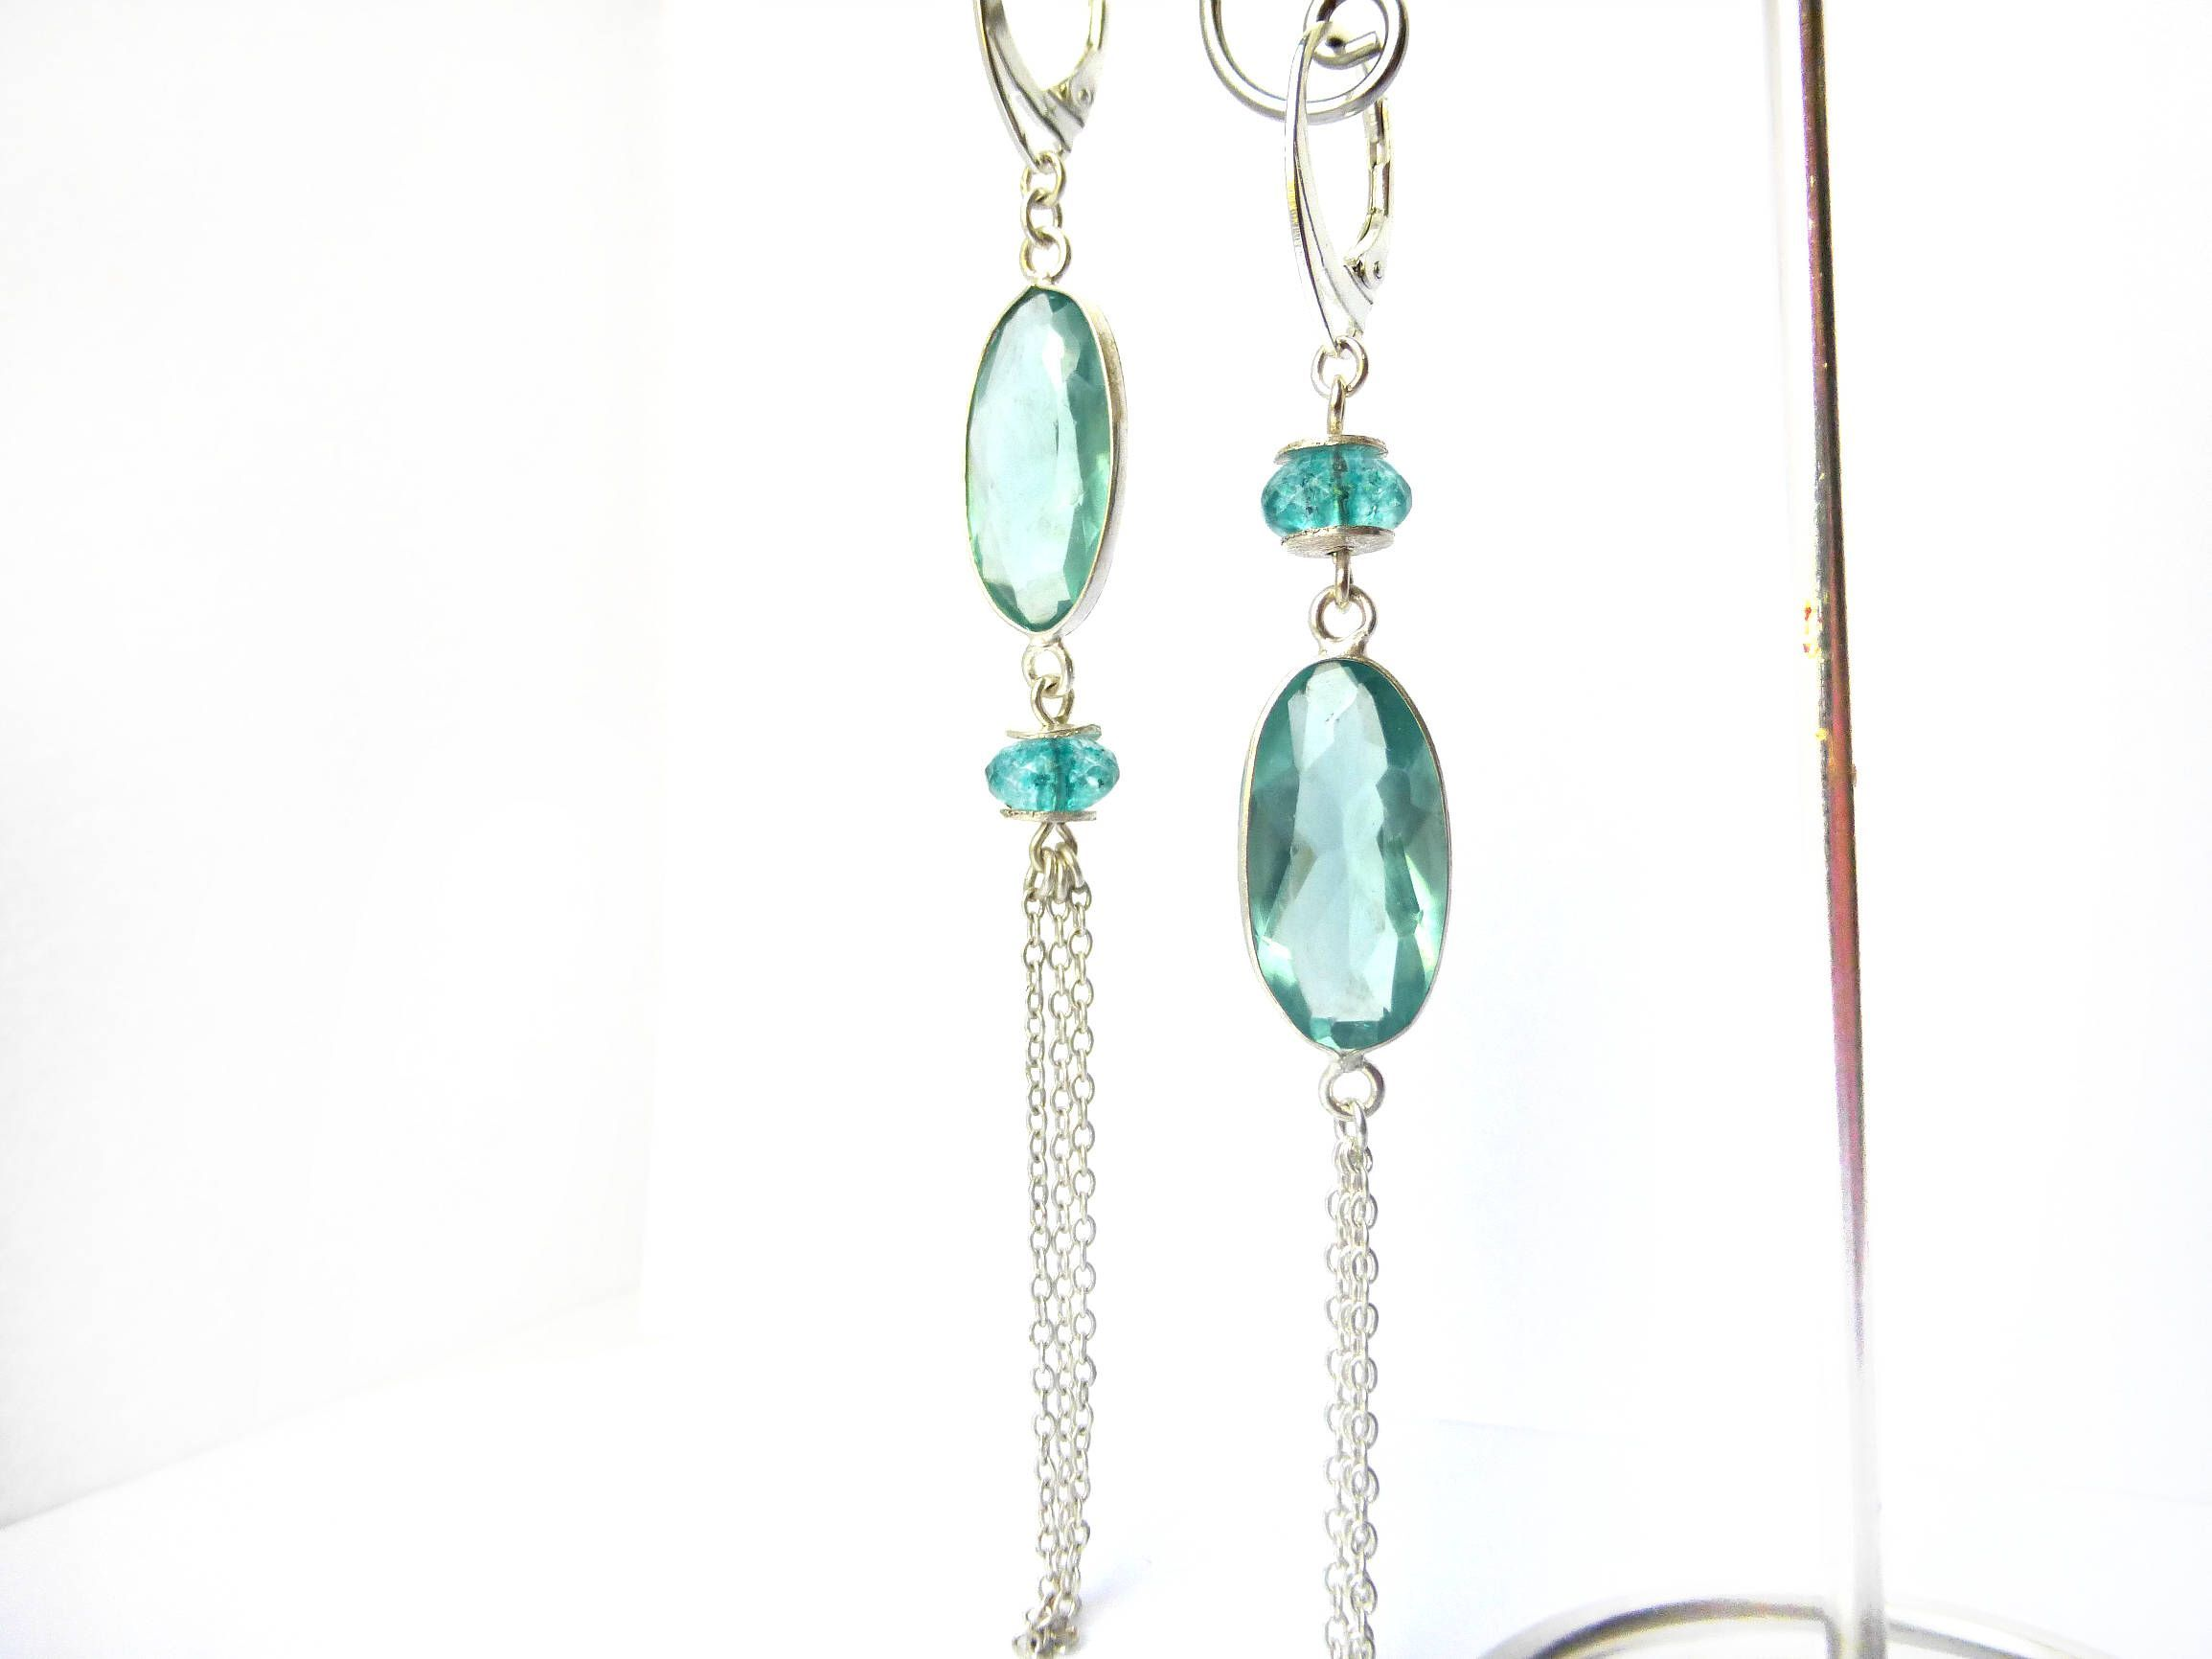 mismatched can mismatch earrings pull off wear style beauty anyone fashion